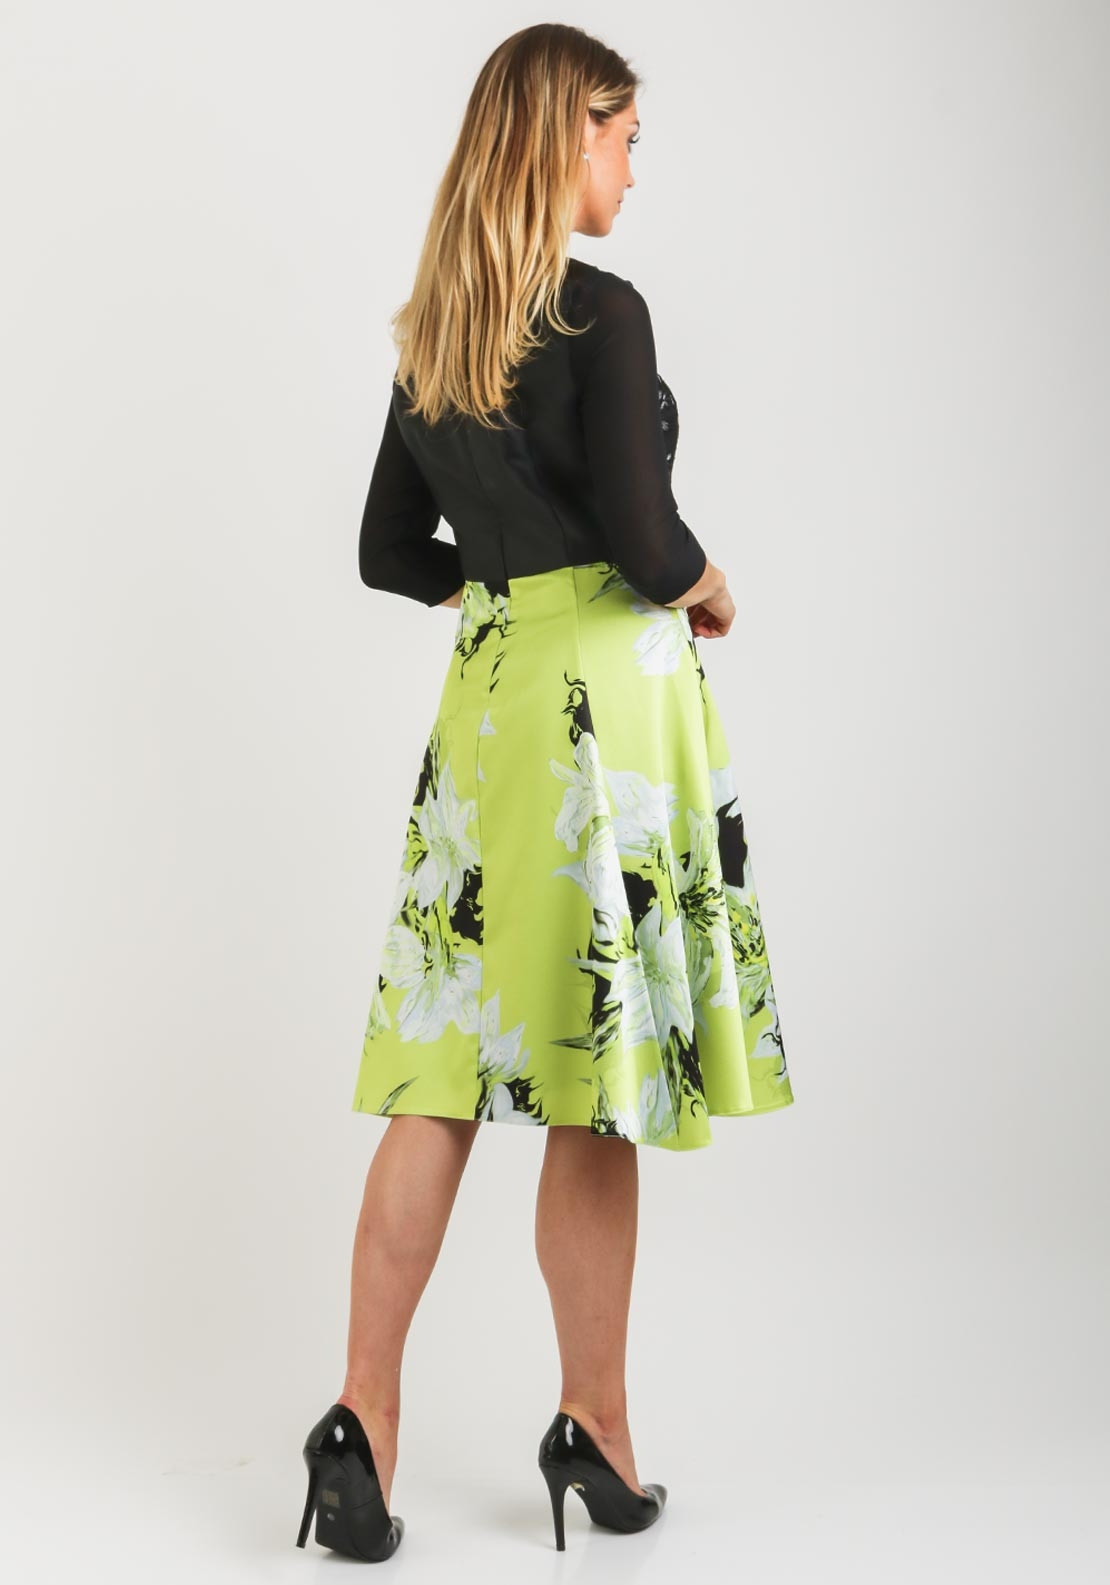 4418586dce81d Ella Boo Embroidered Bodice Flared Dress, Lime & Black. Be the first to  review this product